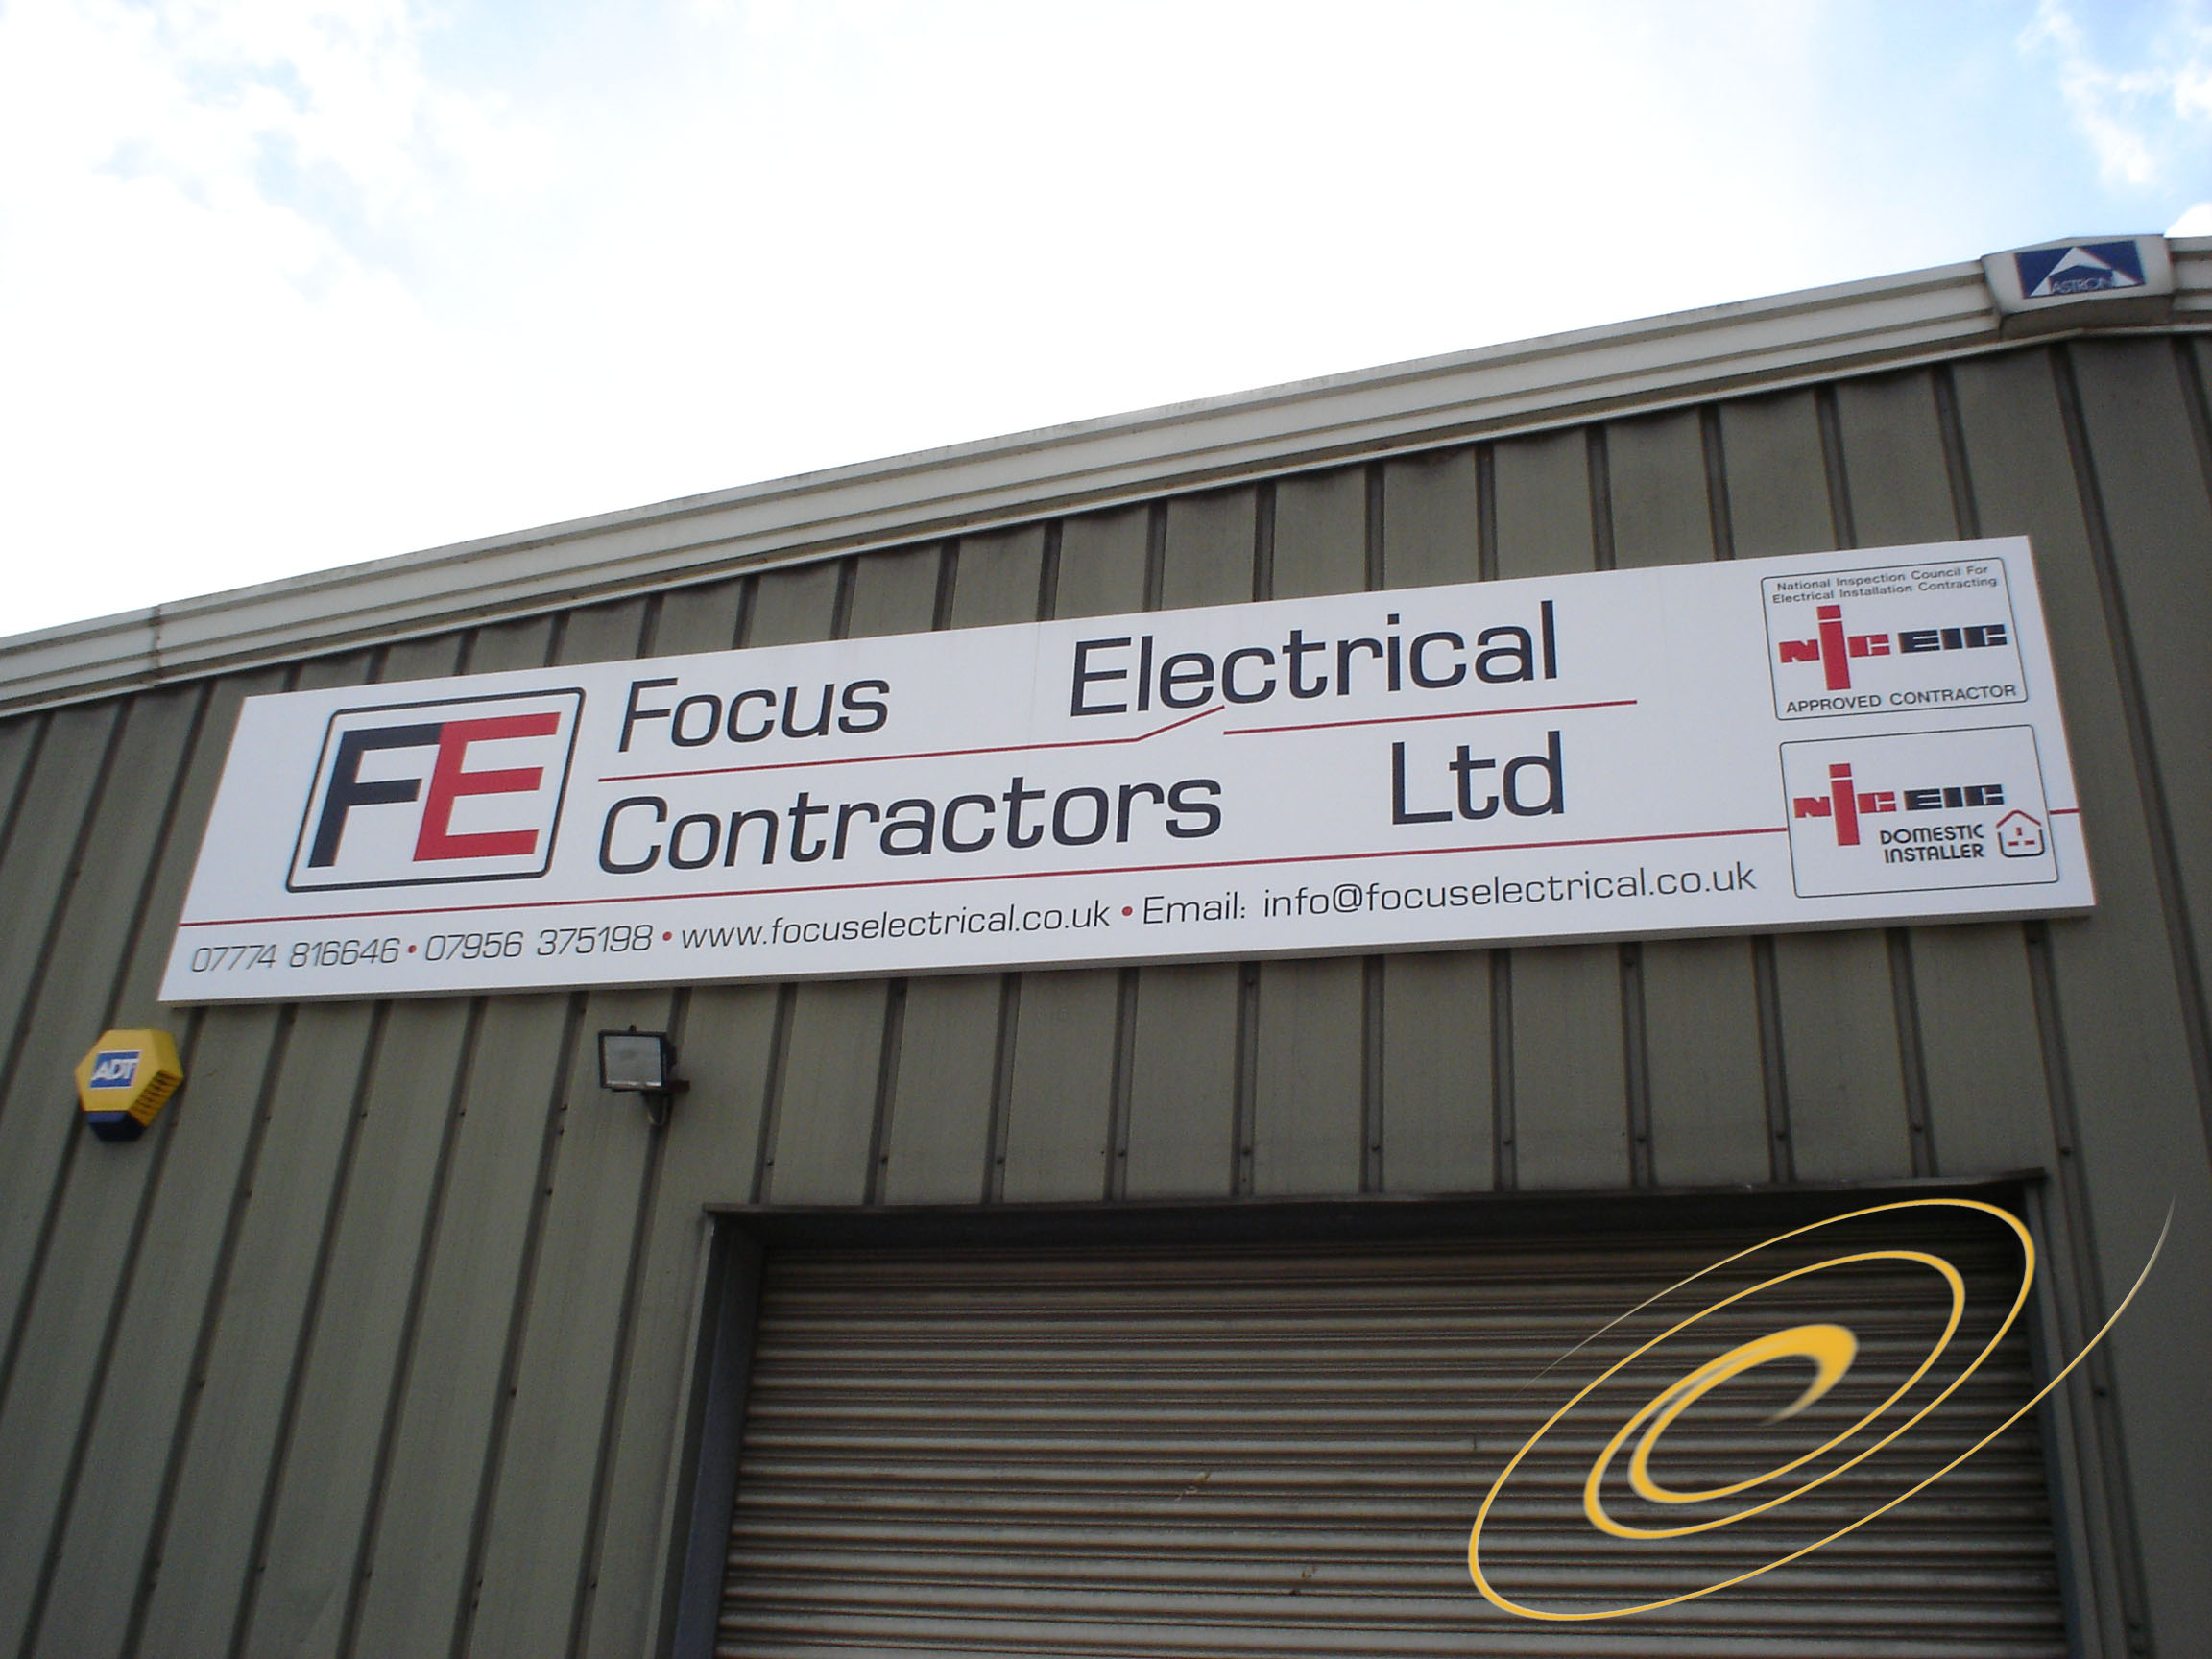 Commercial Building Signs Cost 28 Images Commercial Building Signage From Plg Signs